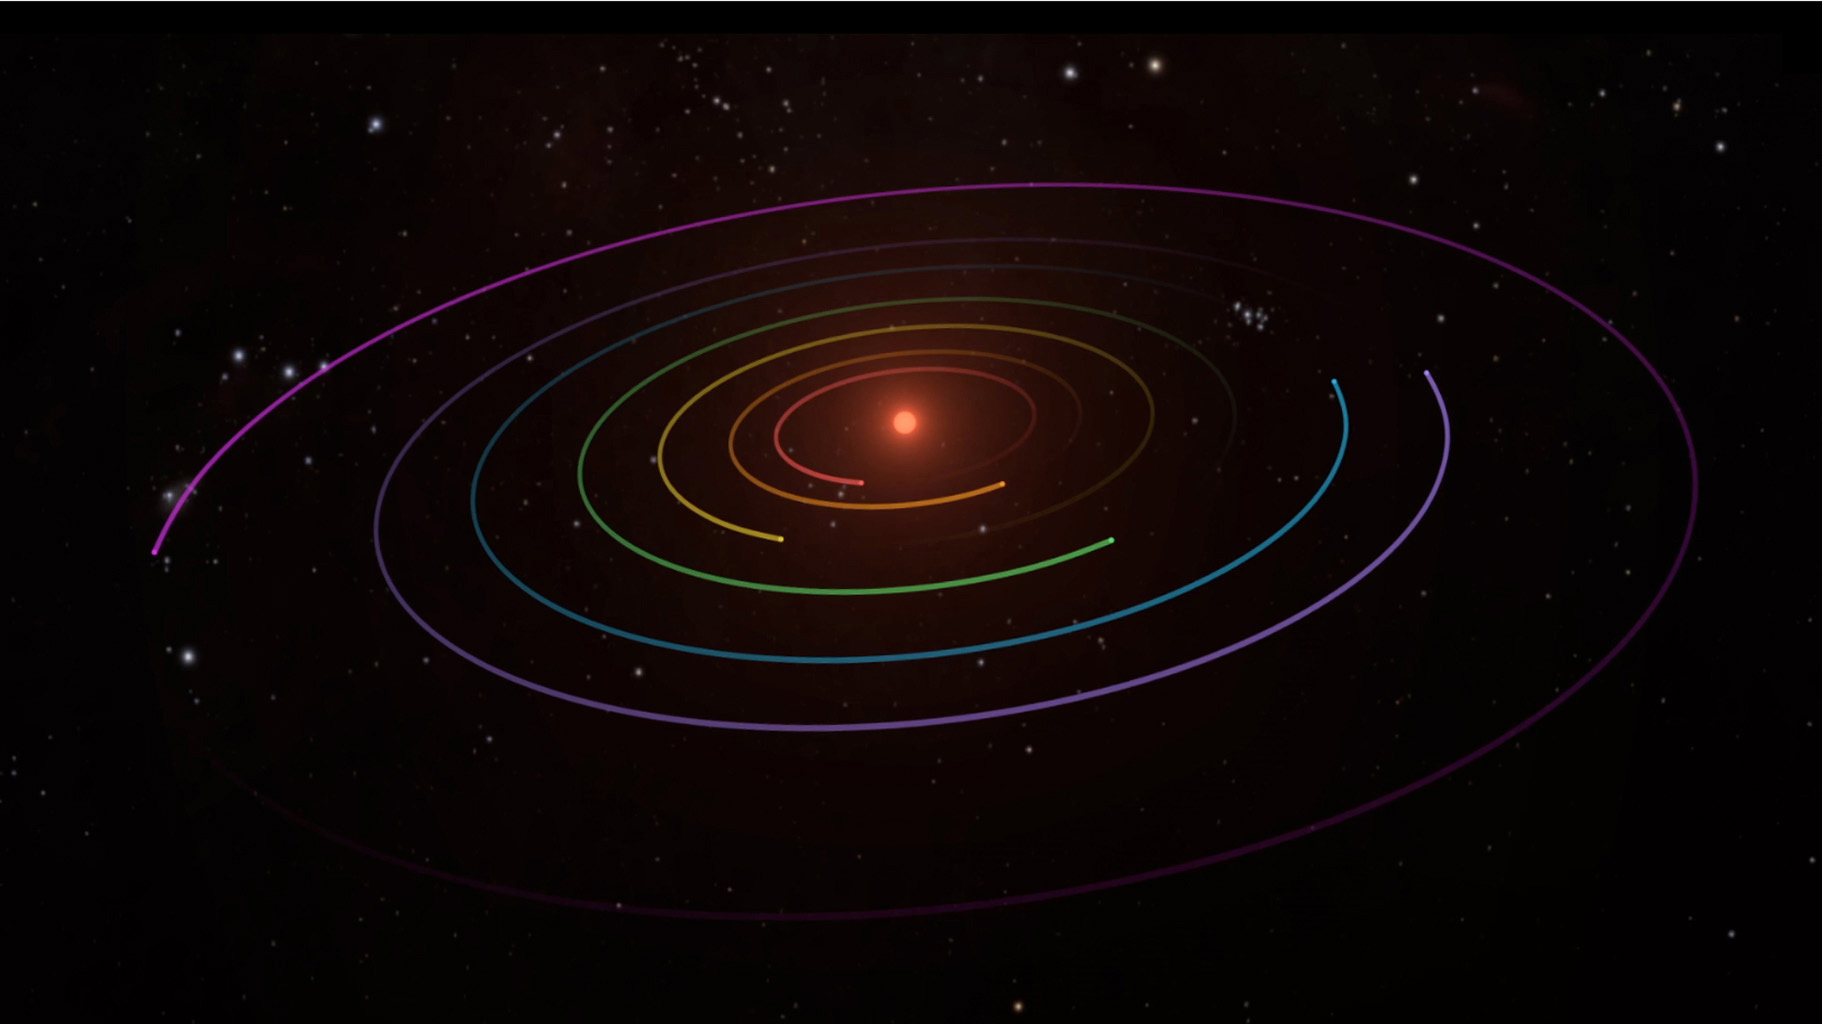 Space Images | TRAPPIST-1 Planetary Orbits and Transits